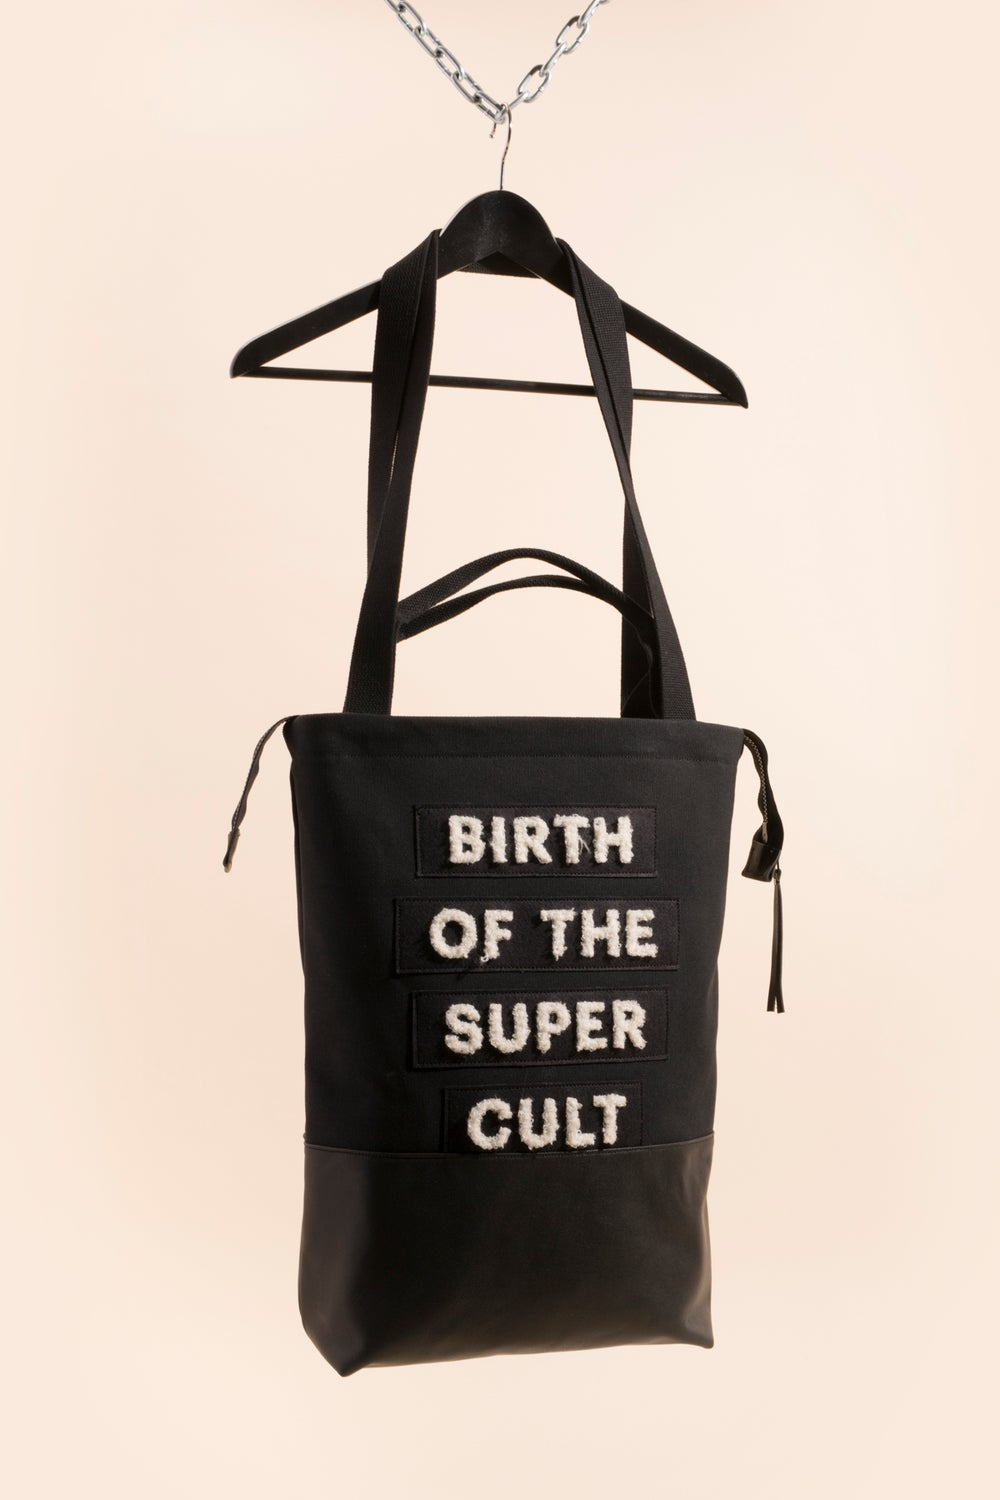 Image of Zipper Tote - Birth of the Super Cult